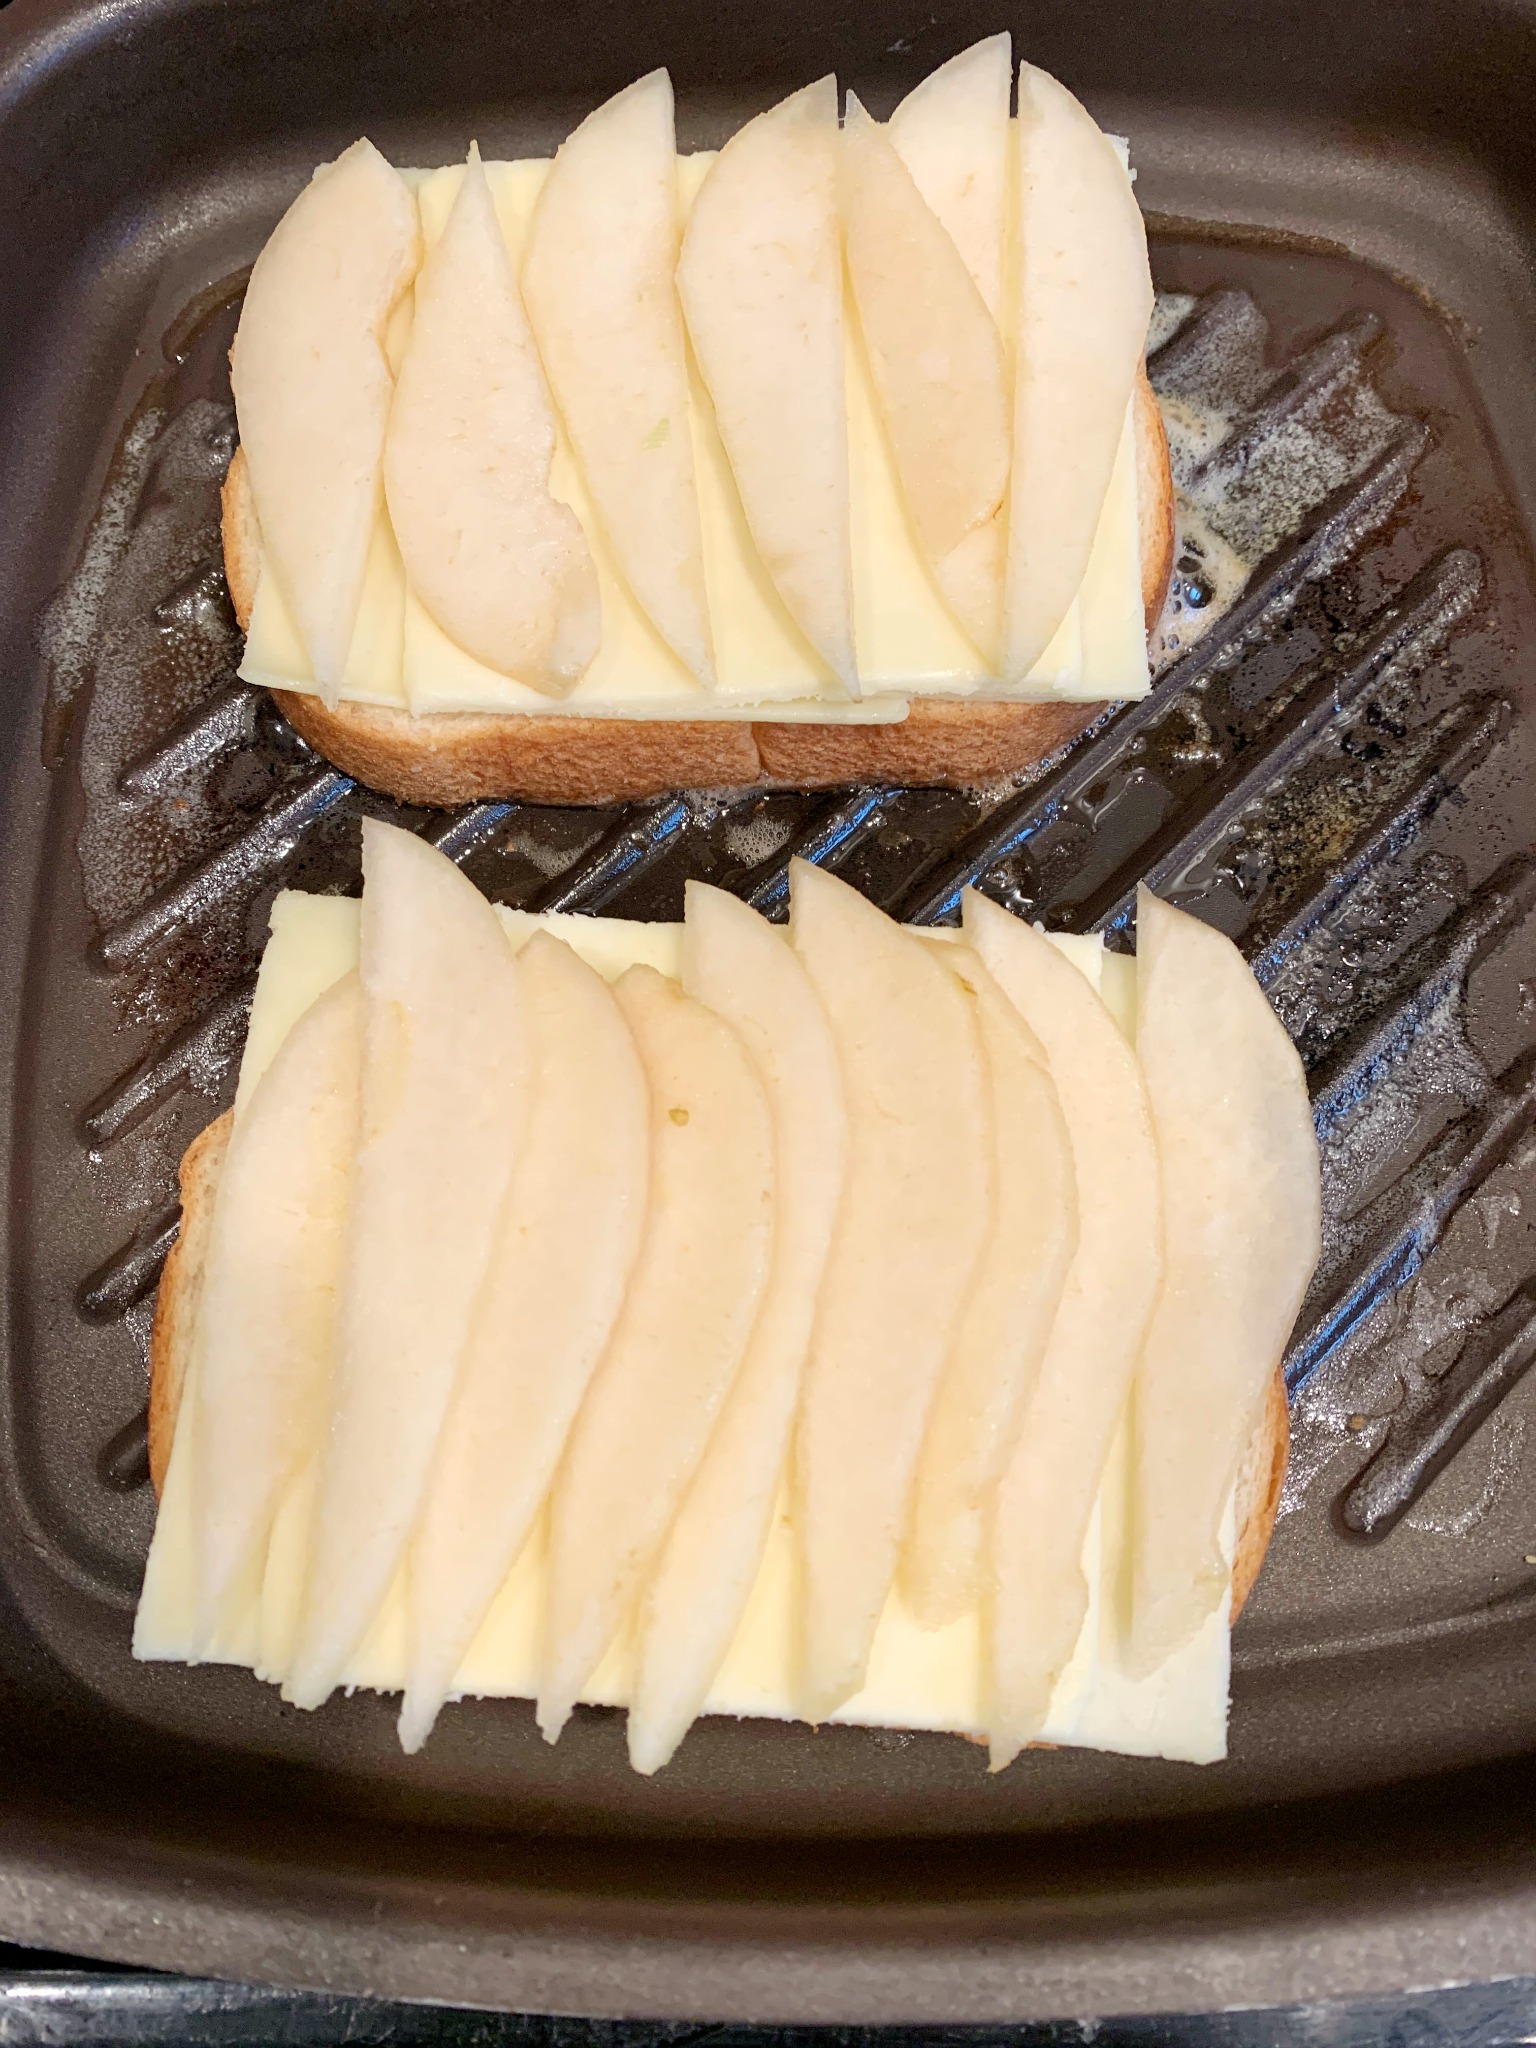 a cast iron grill pan with 2 slices of bread topped with cheese and sliced pears